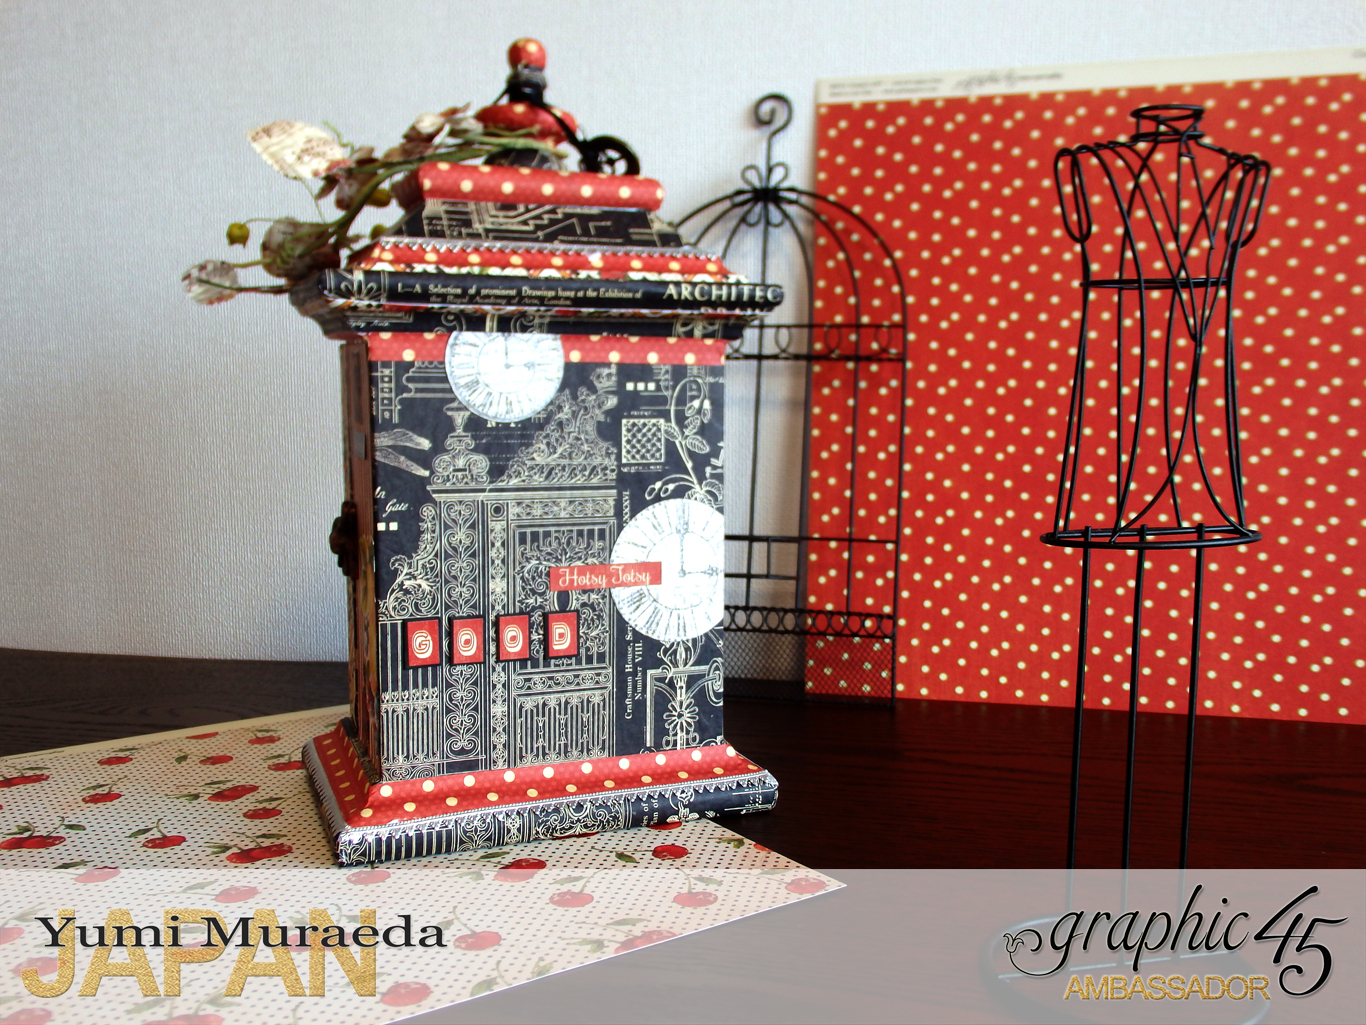 14Up Cycle Graphic45 DIY Craftpaper with Times Nouveau Secret Clock by Yumi Muraeada Product by Graphic 45 Photo